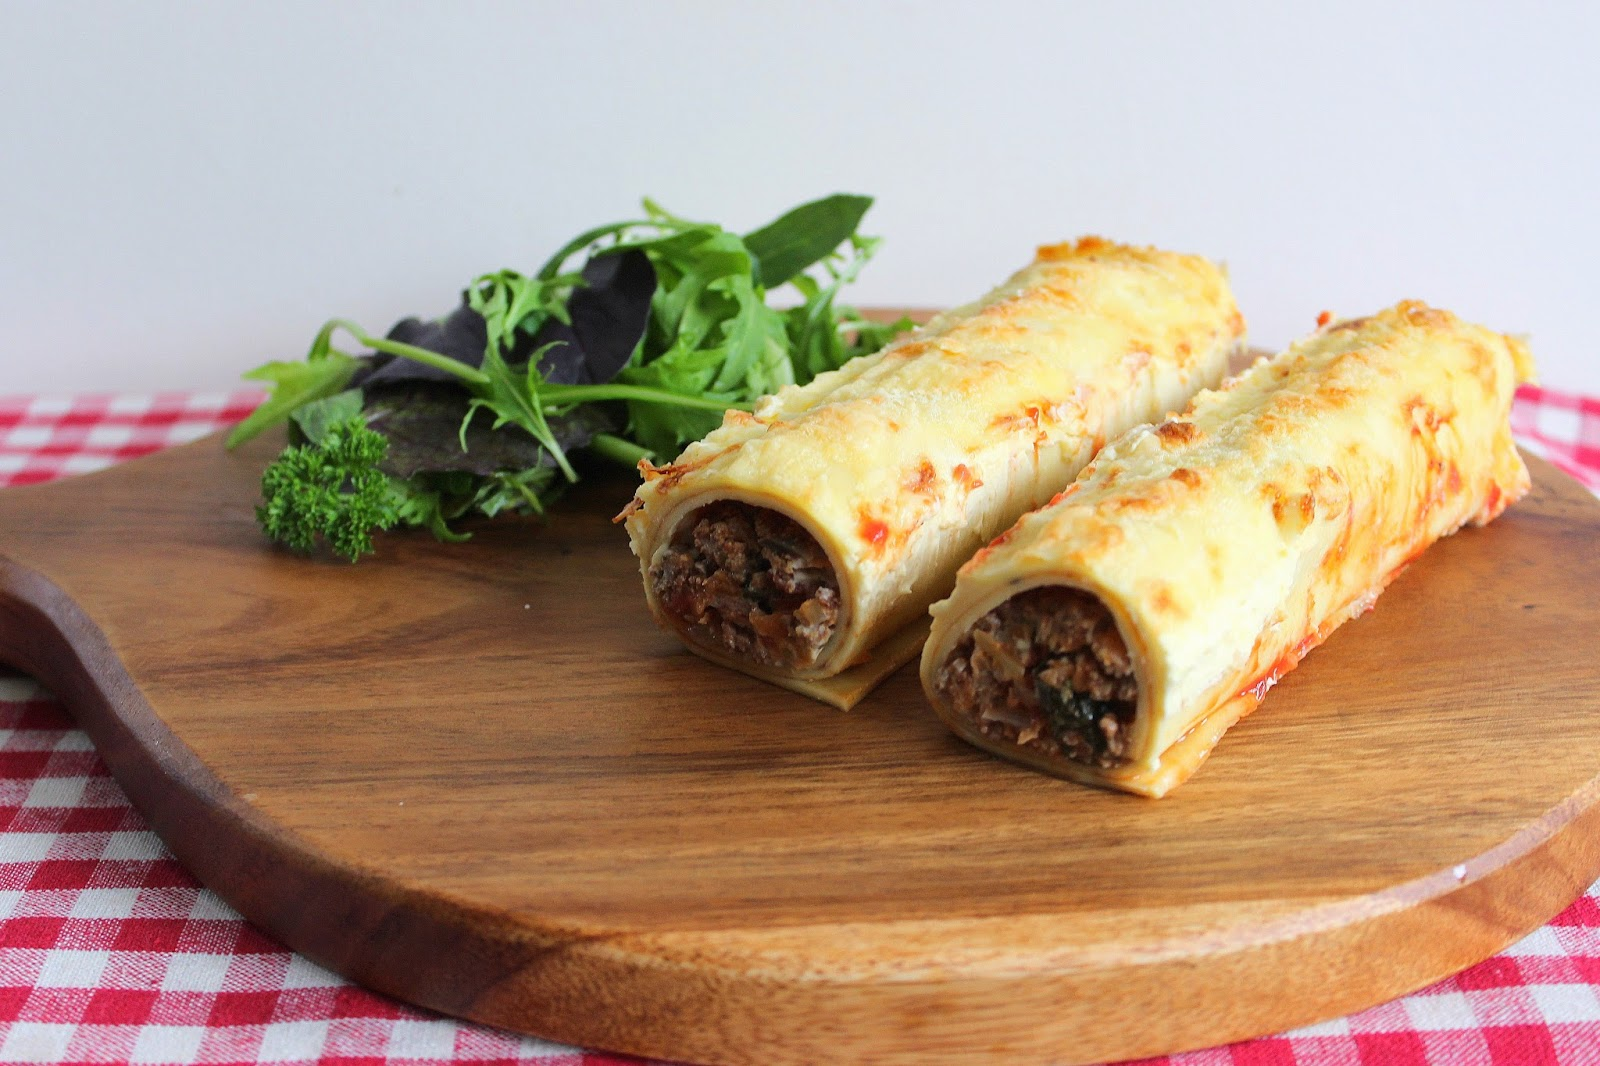 How to make cannelloni tubes